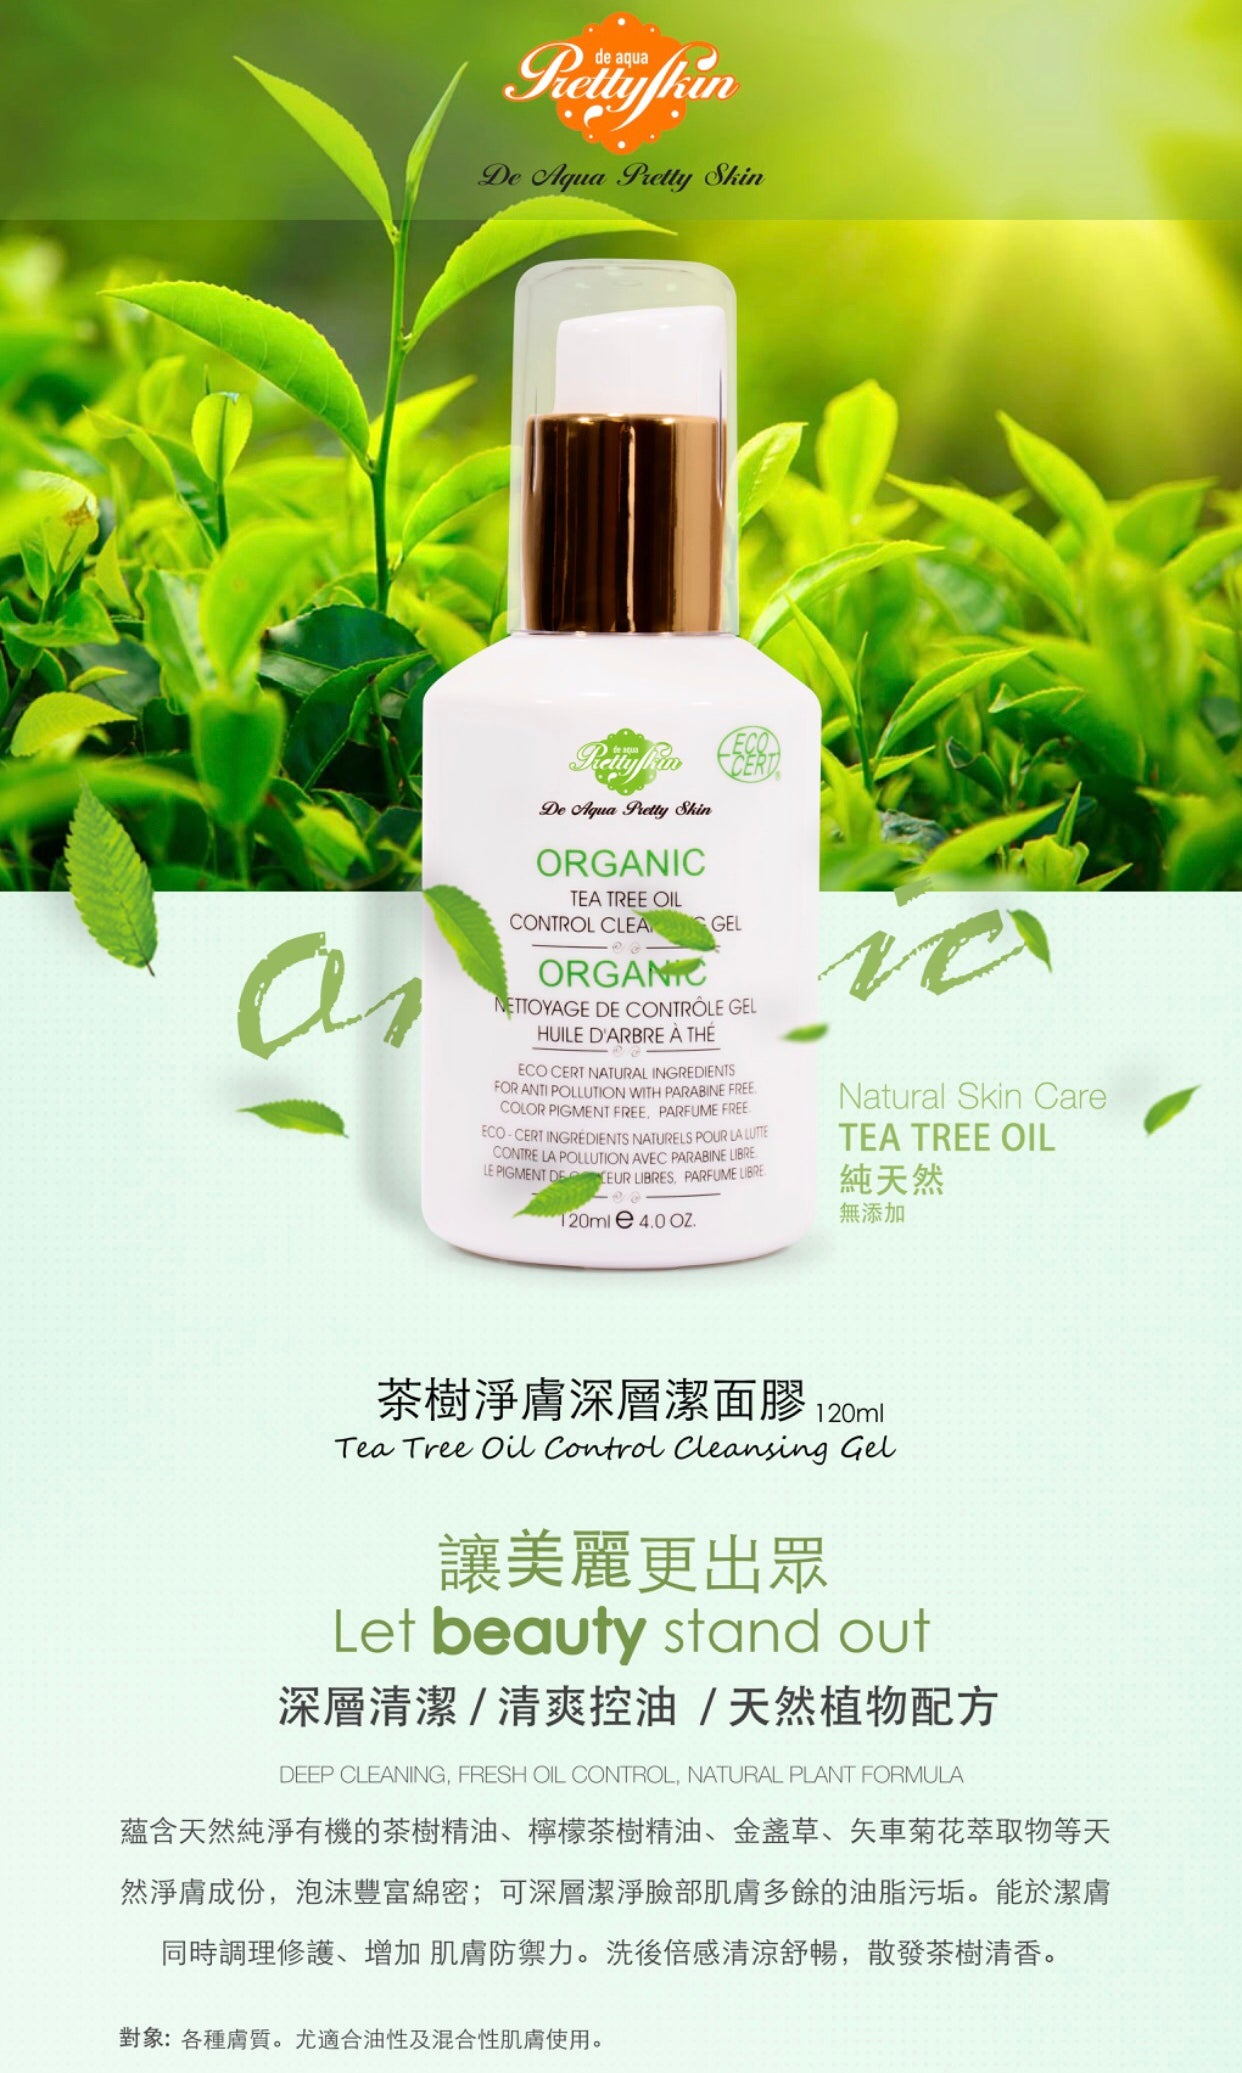 茶樹淨膚深層潔面啫喱 TEA TREE OIL CONTROL CLEANSING GEL